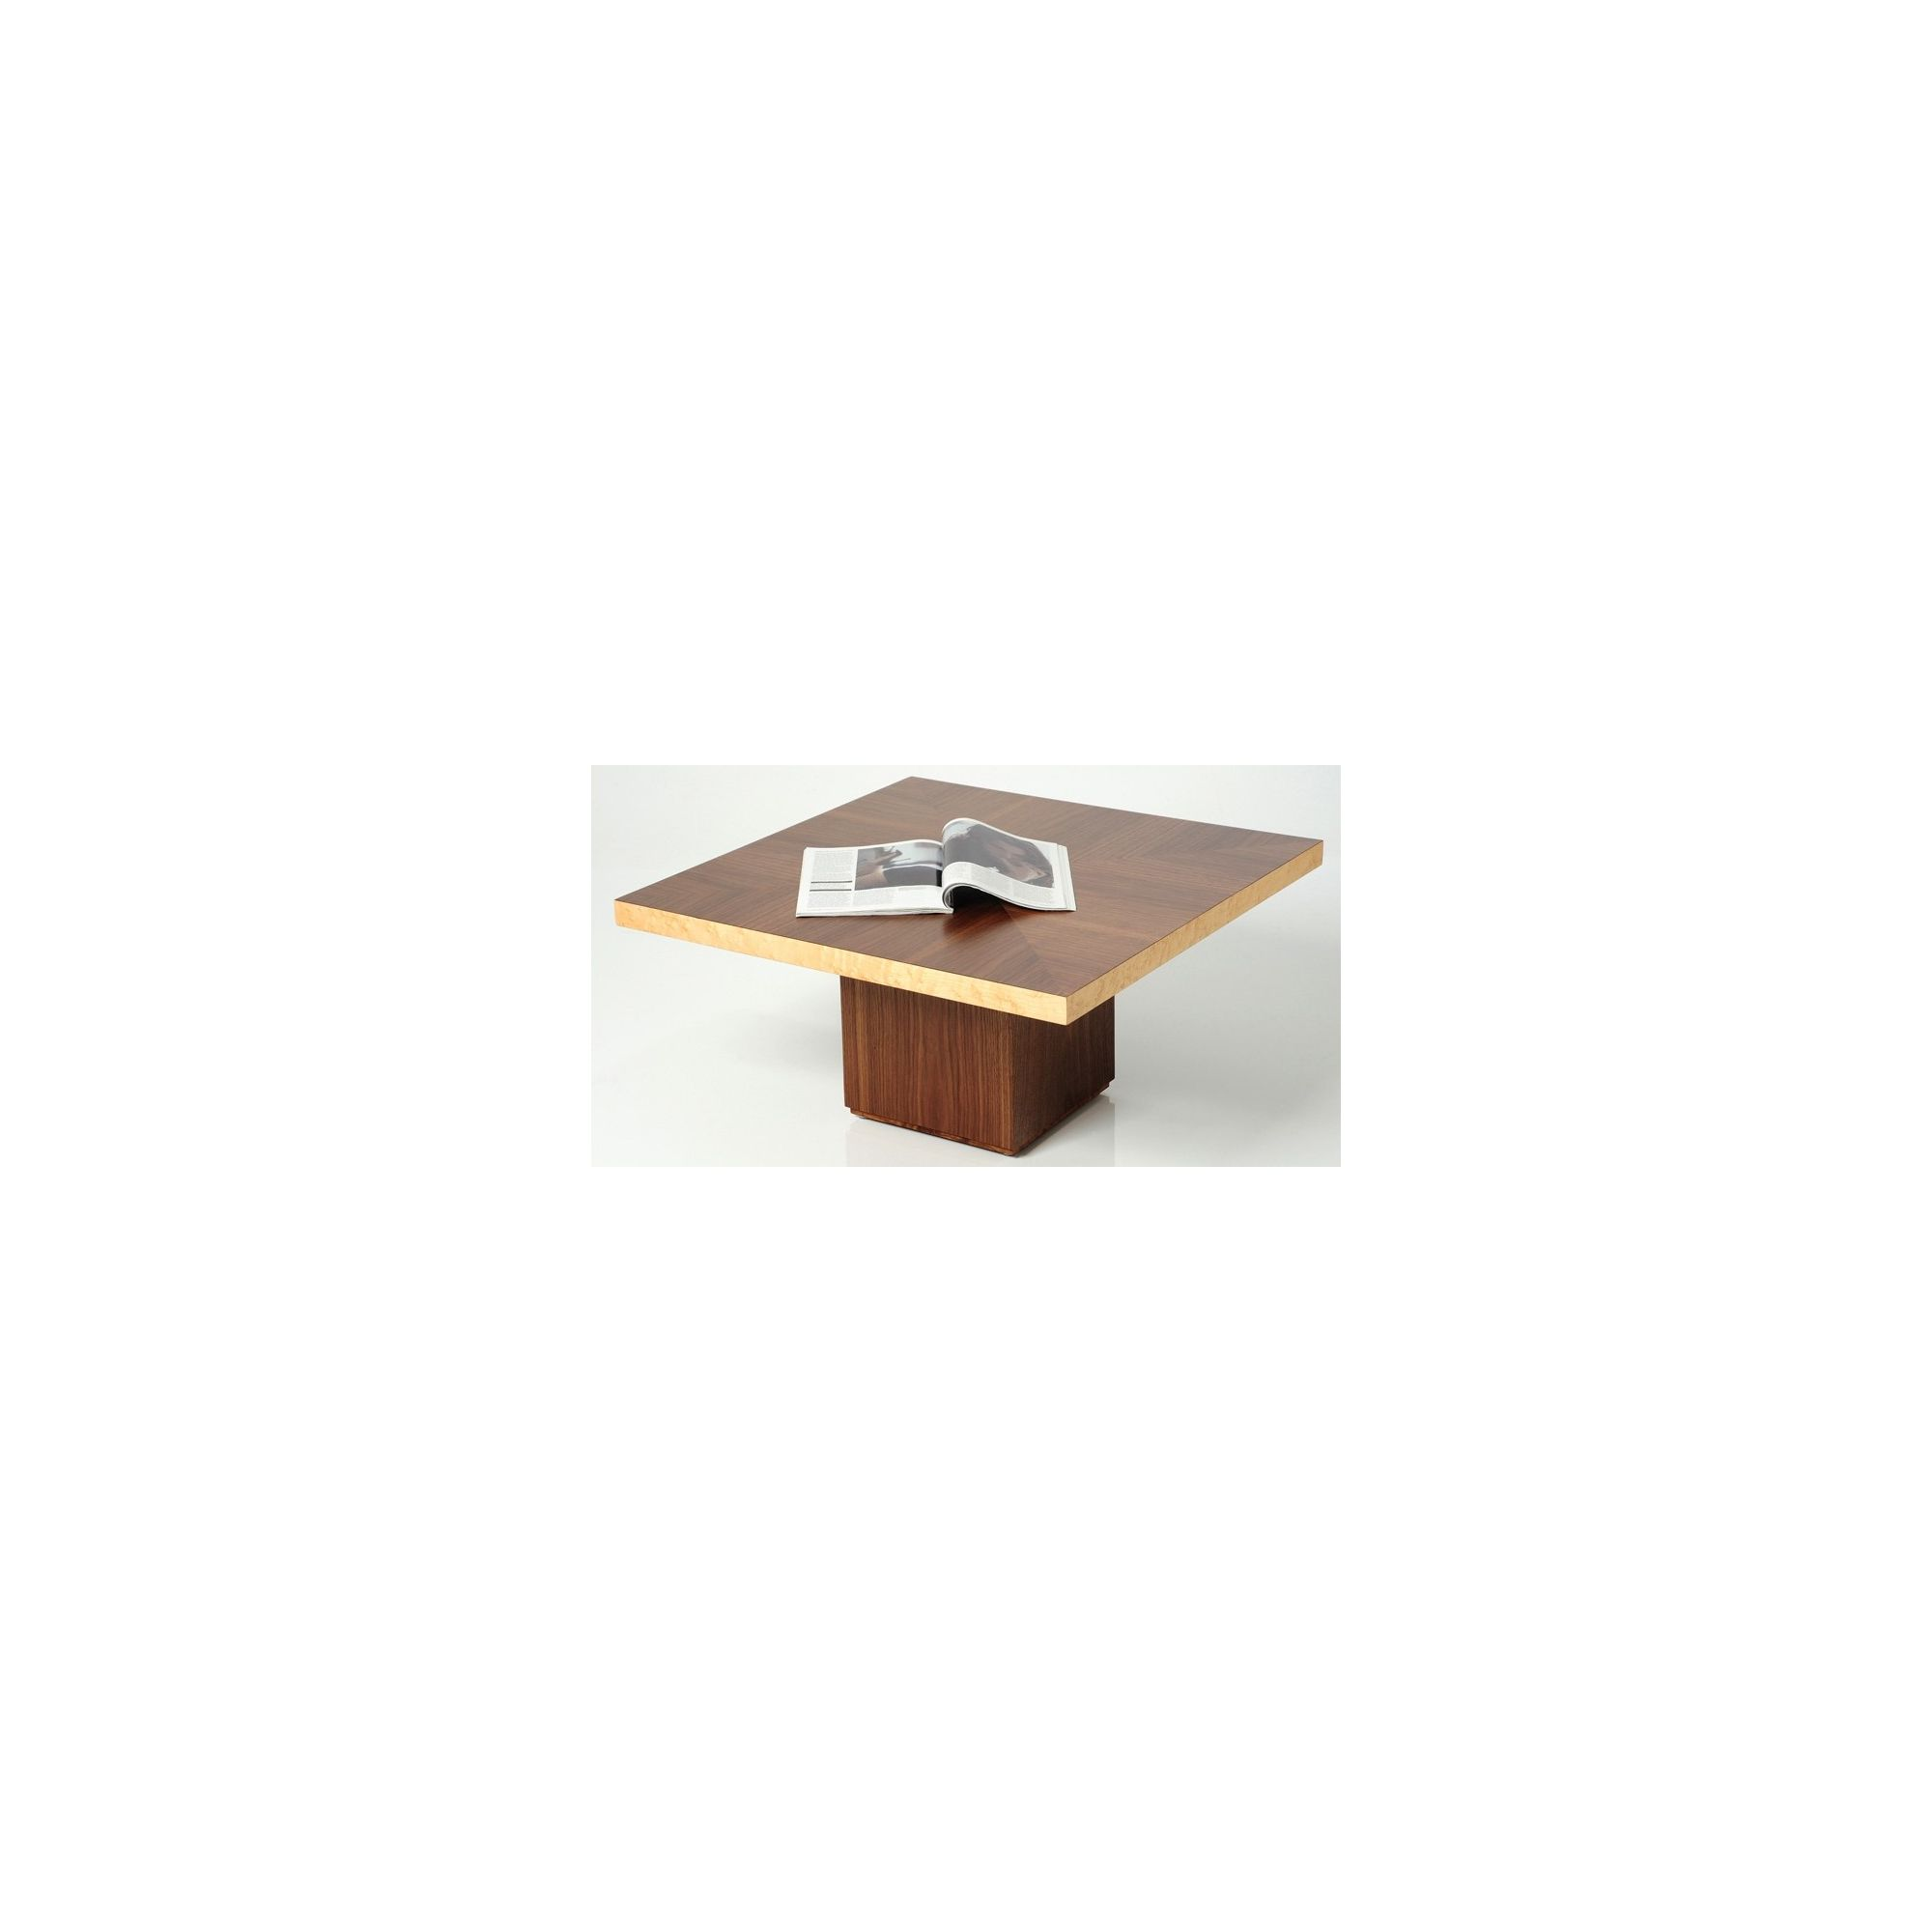 Trefurn Tablet Coffee Table - Black Walnut and Birds Eye Maple at Tesco Direct